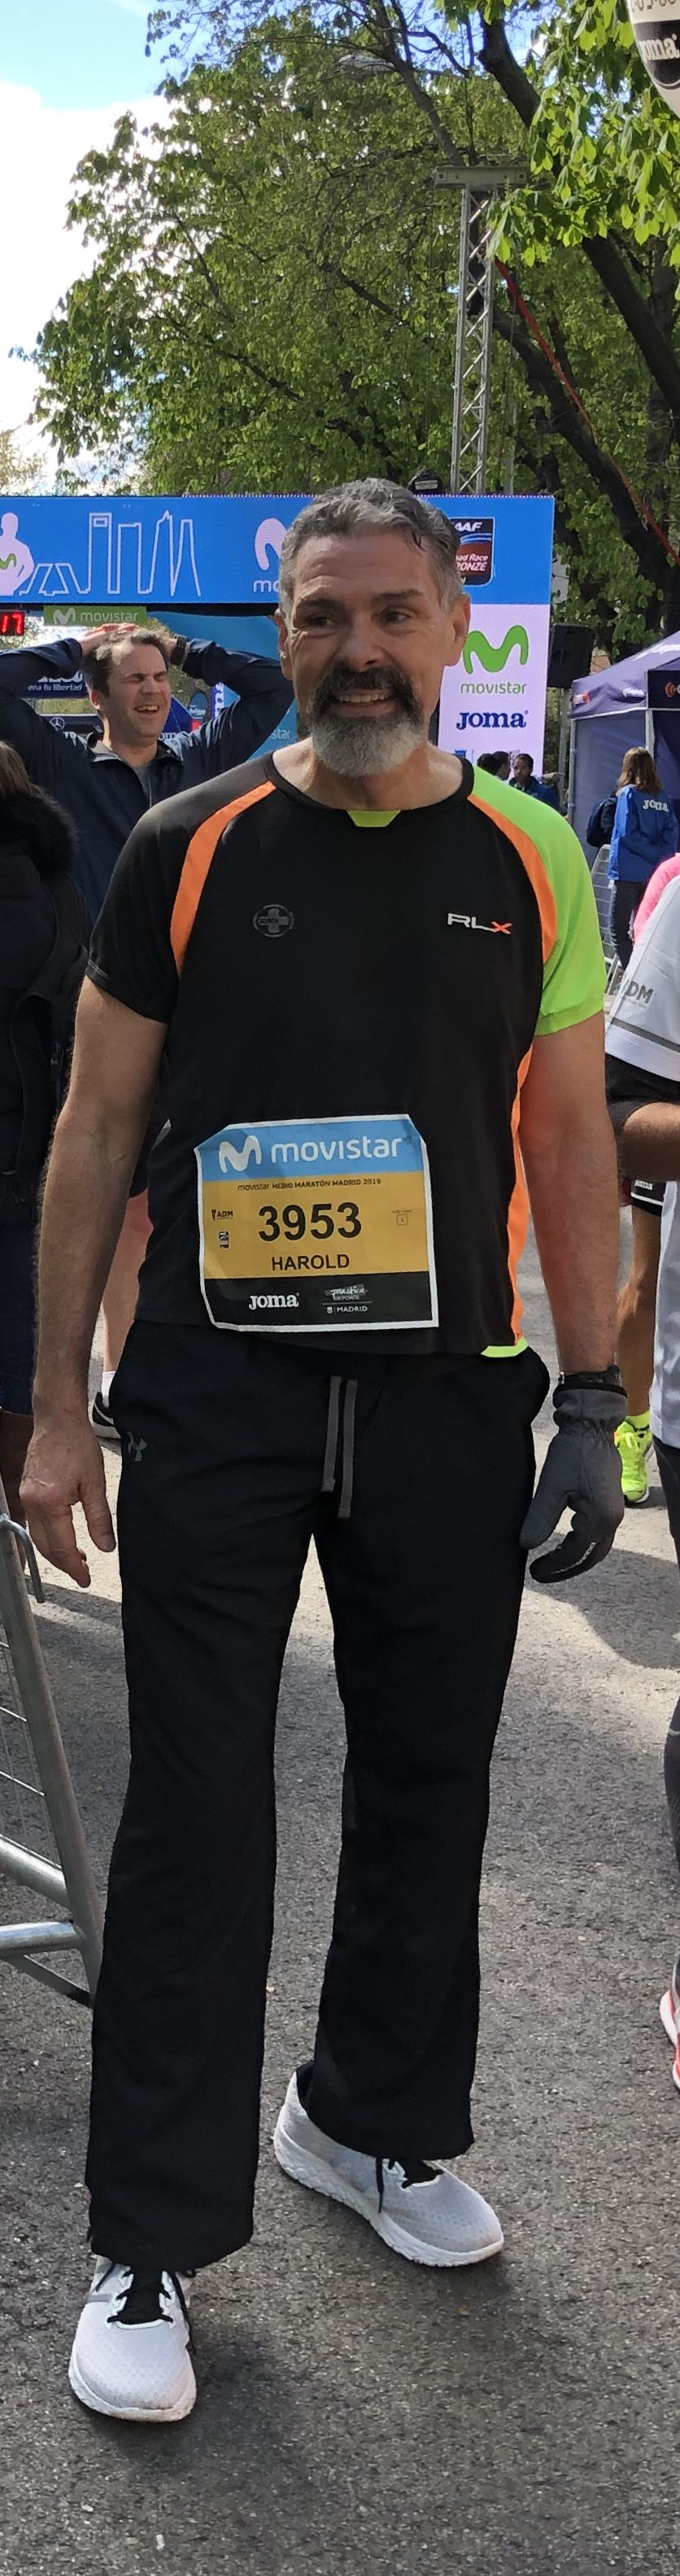 Harold Recinos at the Madrid half-marathon on April 7, 2019. He ran the race in honor of his brother who passed away on April 7, 1985.